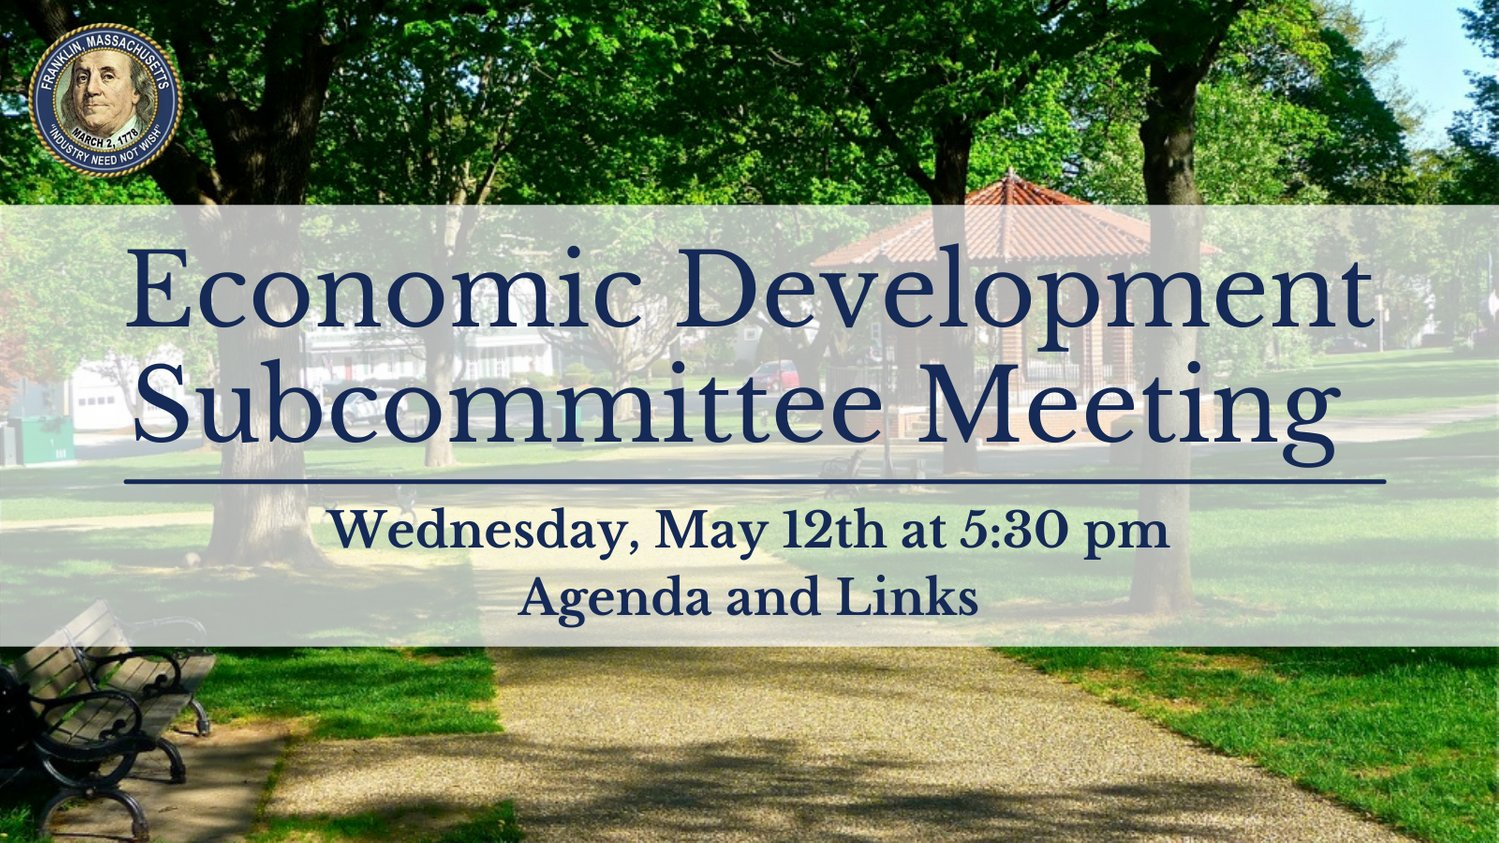 Economic Development Subcommittee Meeting - May 12